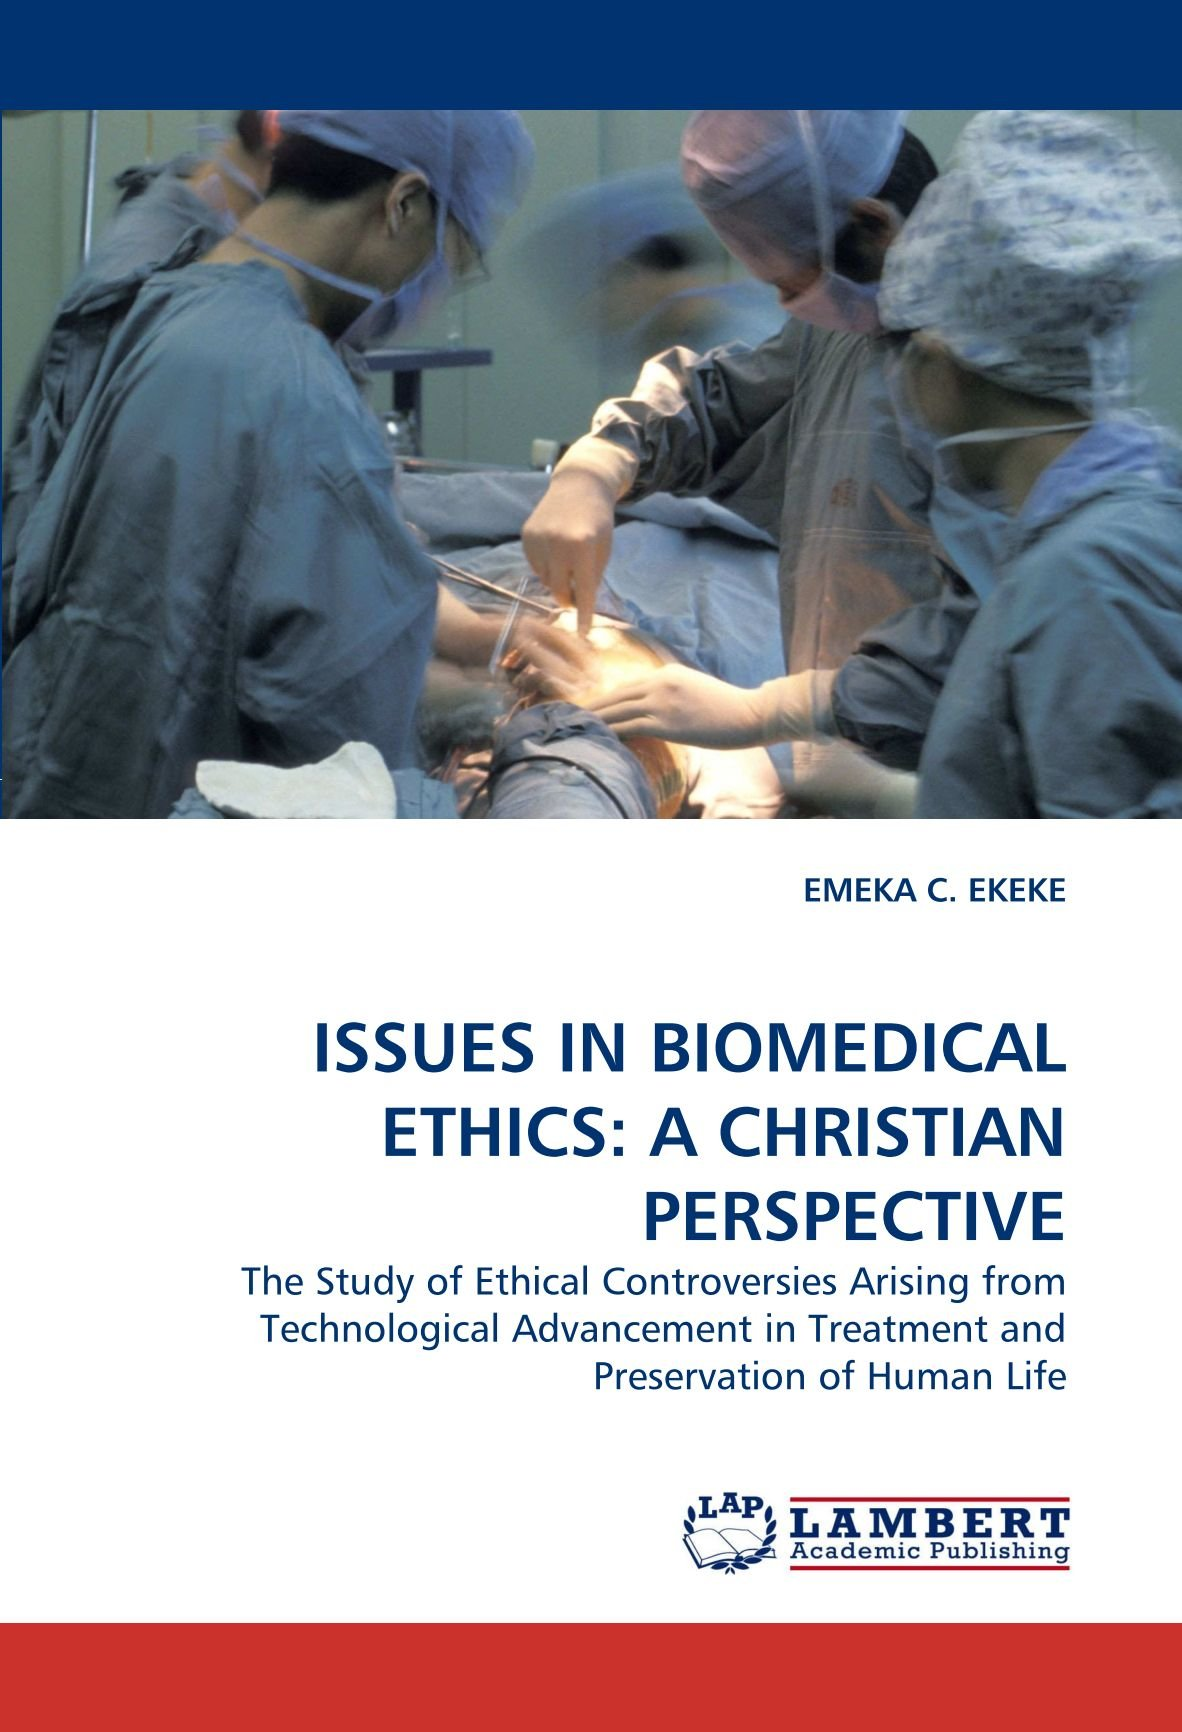 ISSUES IN BIOMEDICAL ETHICS: A CHRISTIAN PERSPECTIVE: The Study of Ethical Controversies Arising from Technological Advancement in Treatment and Preservation of Human Life pdf epub